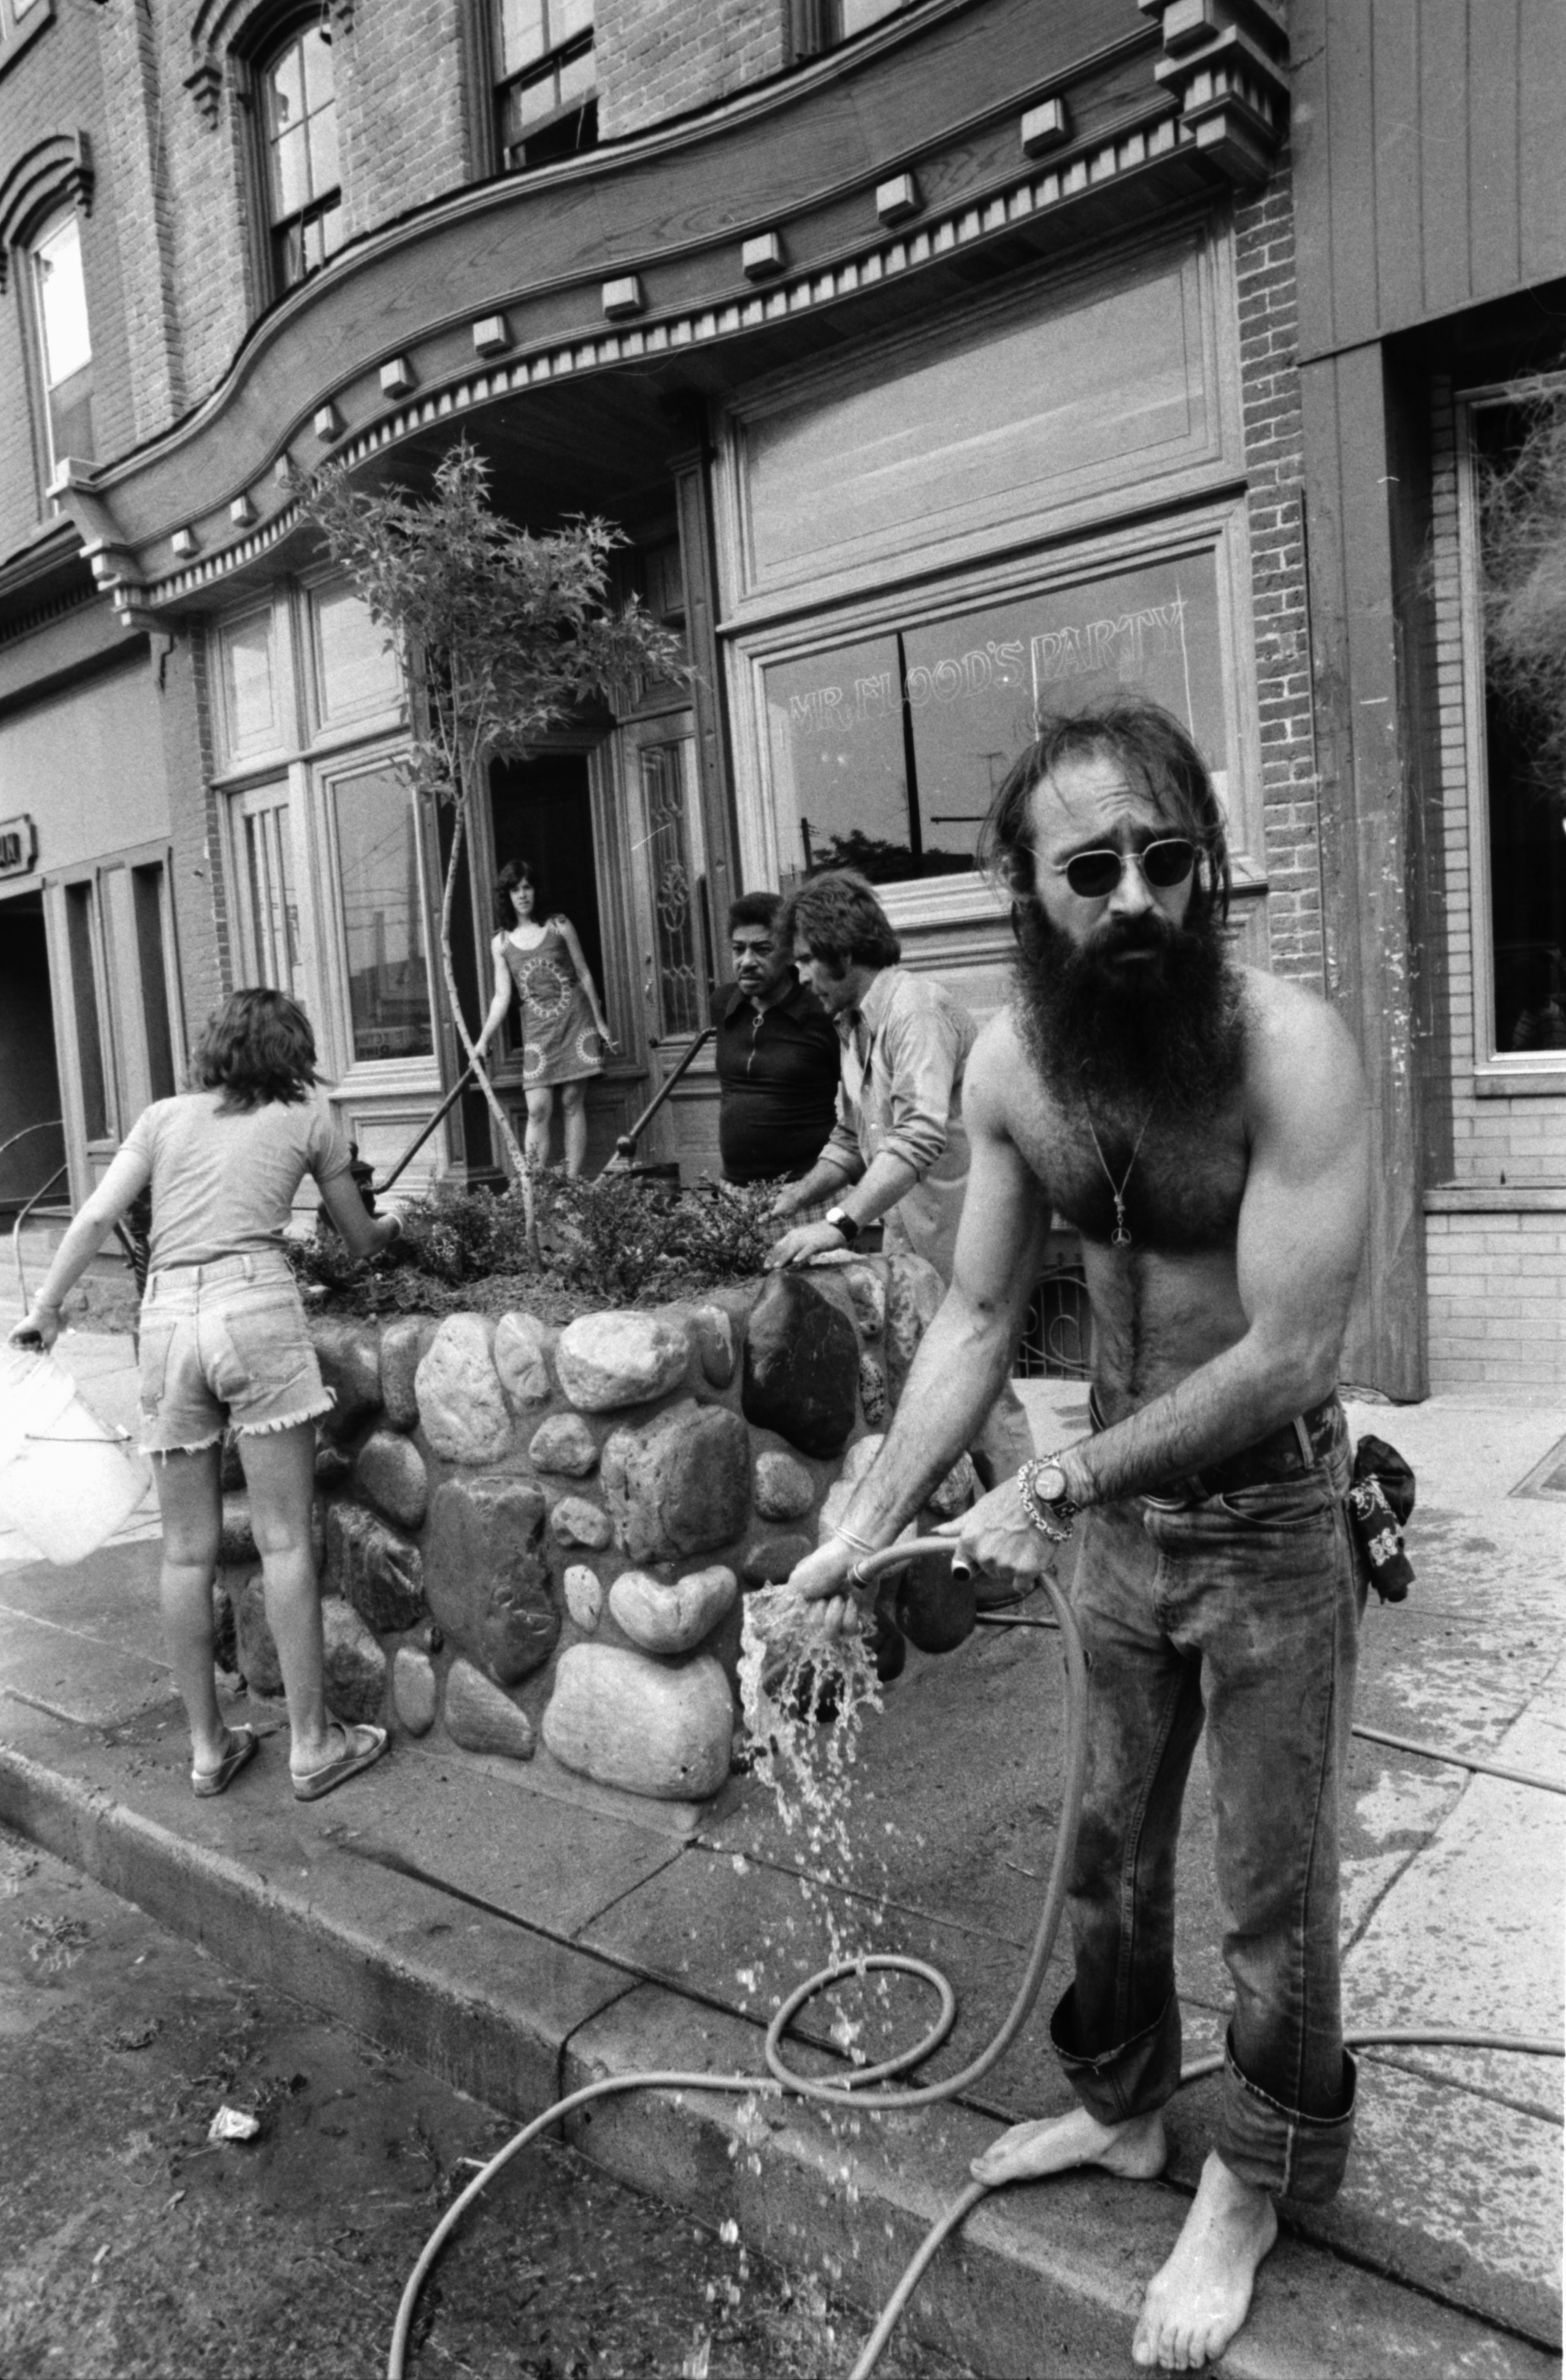 Planters outside of Mr. Flood's Party, July 1975 image